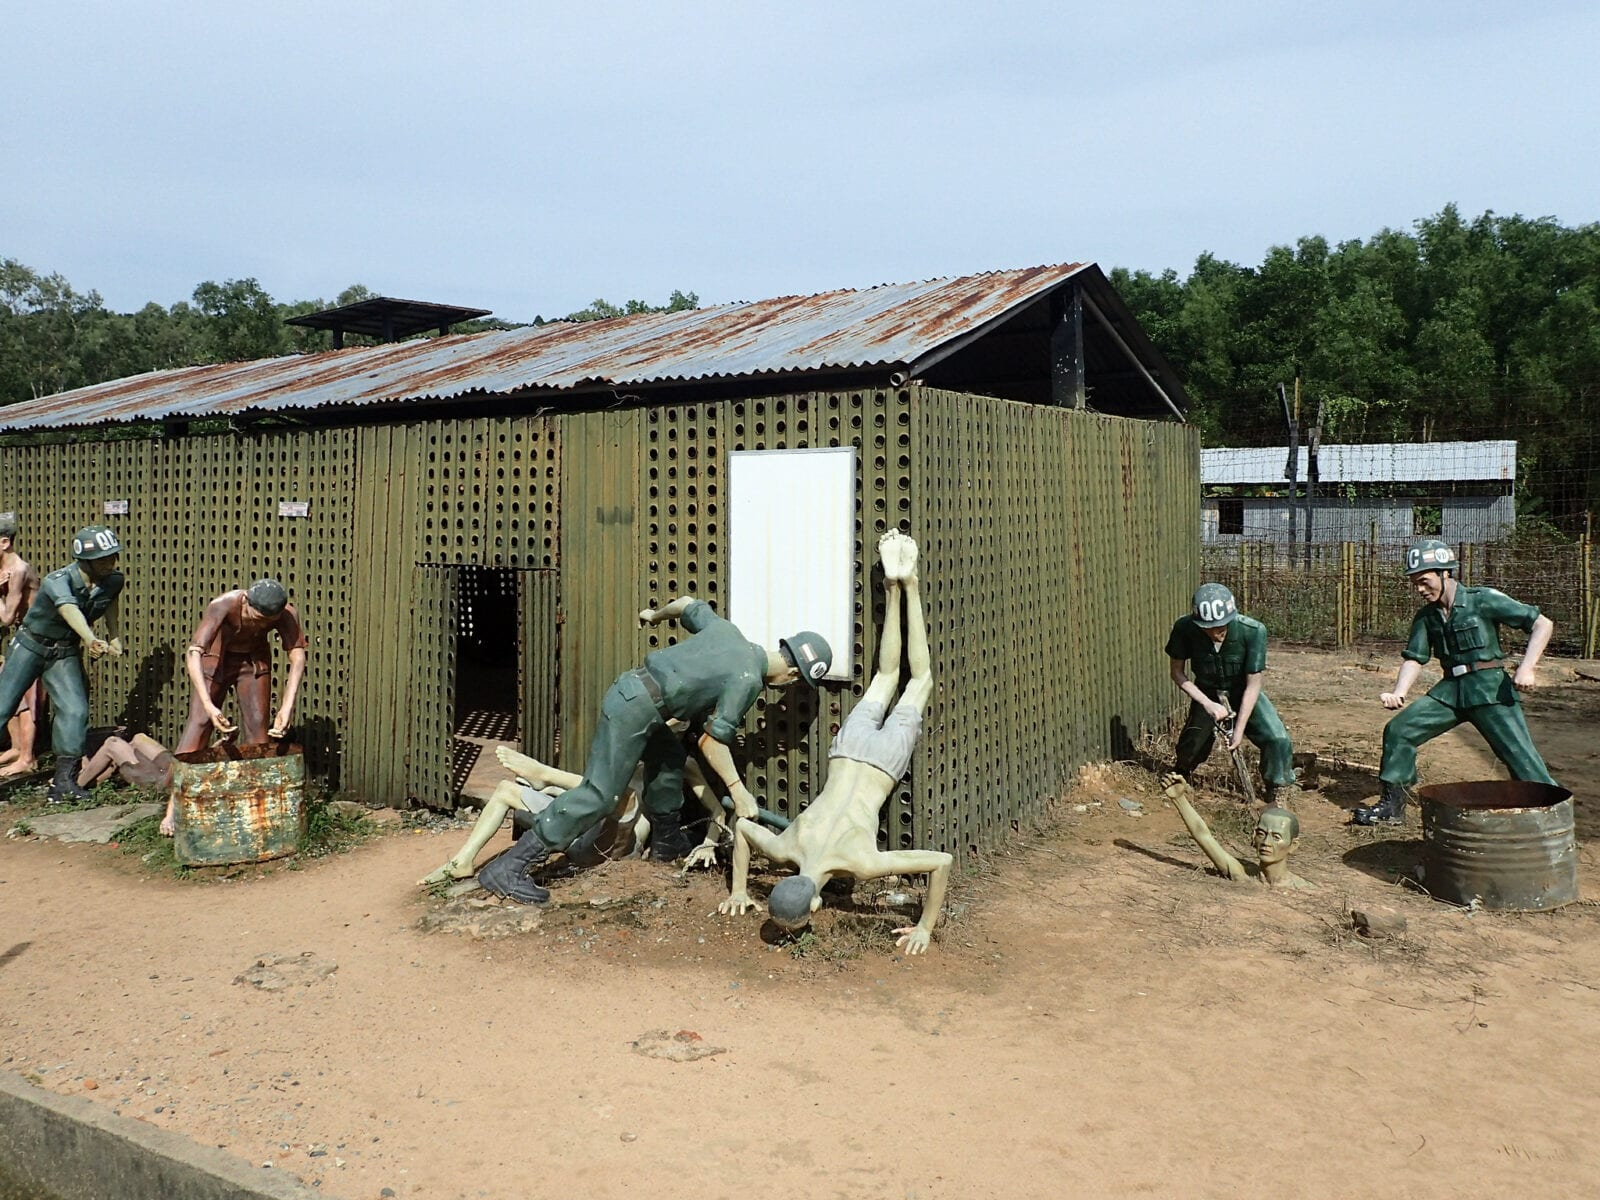 Image of an outside exhibit at the Phu Quoc Prison Museum in Vietnam